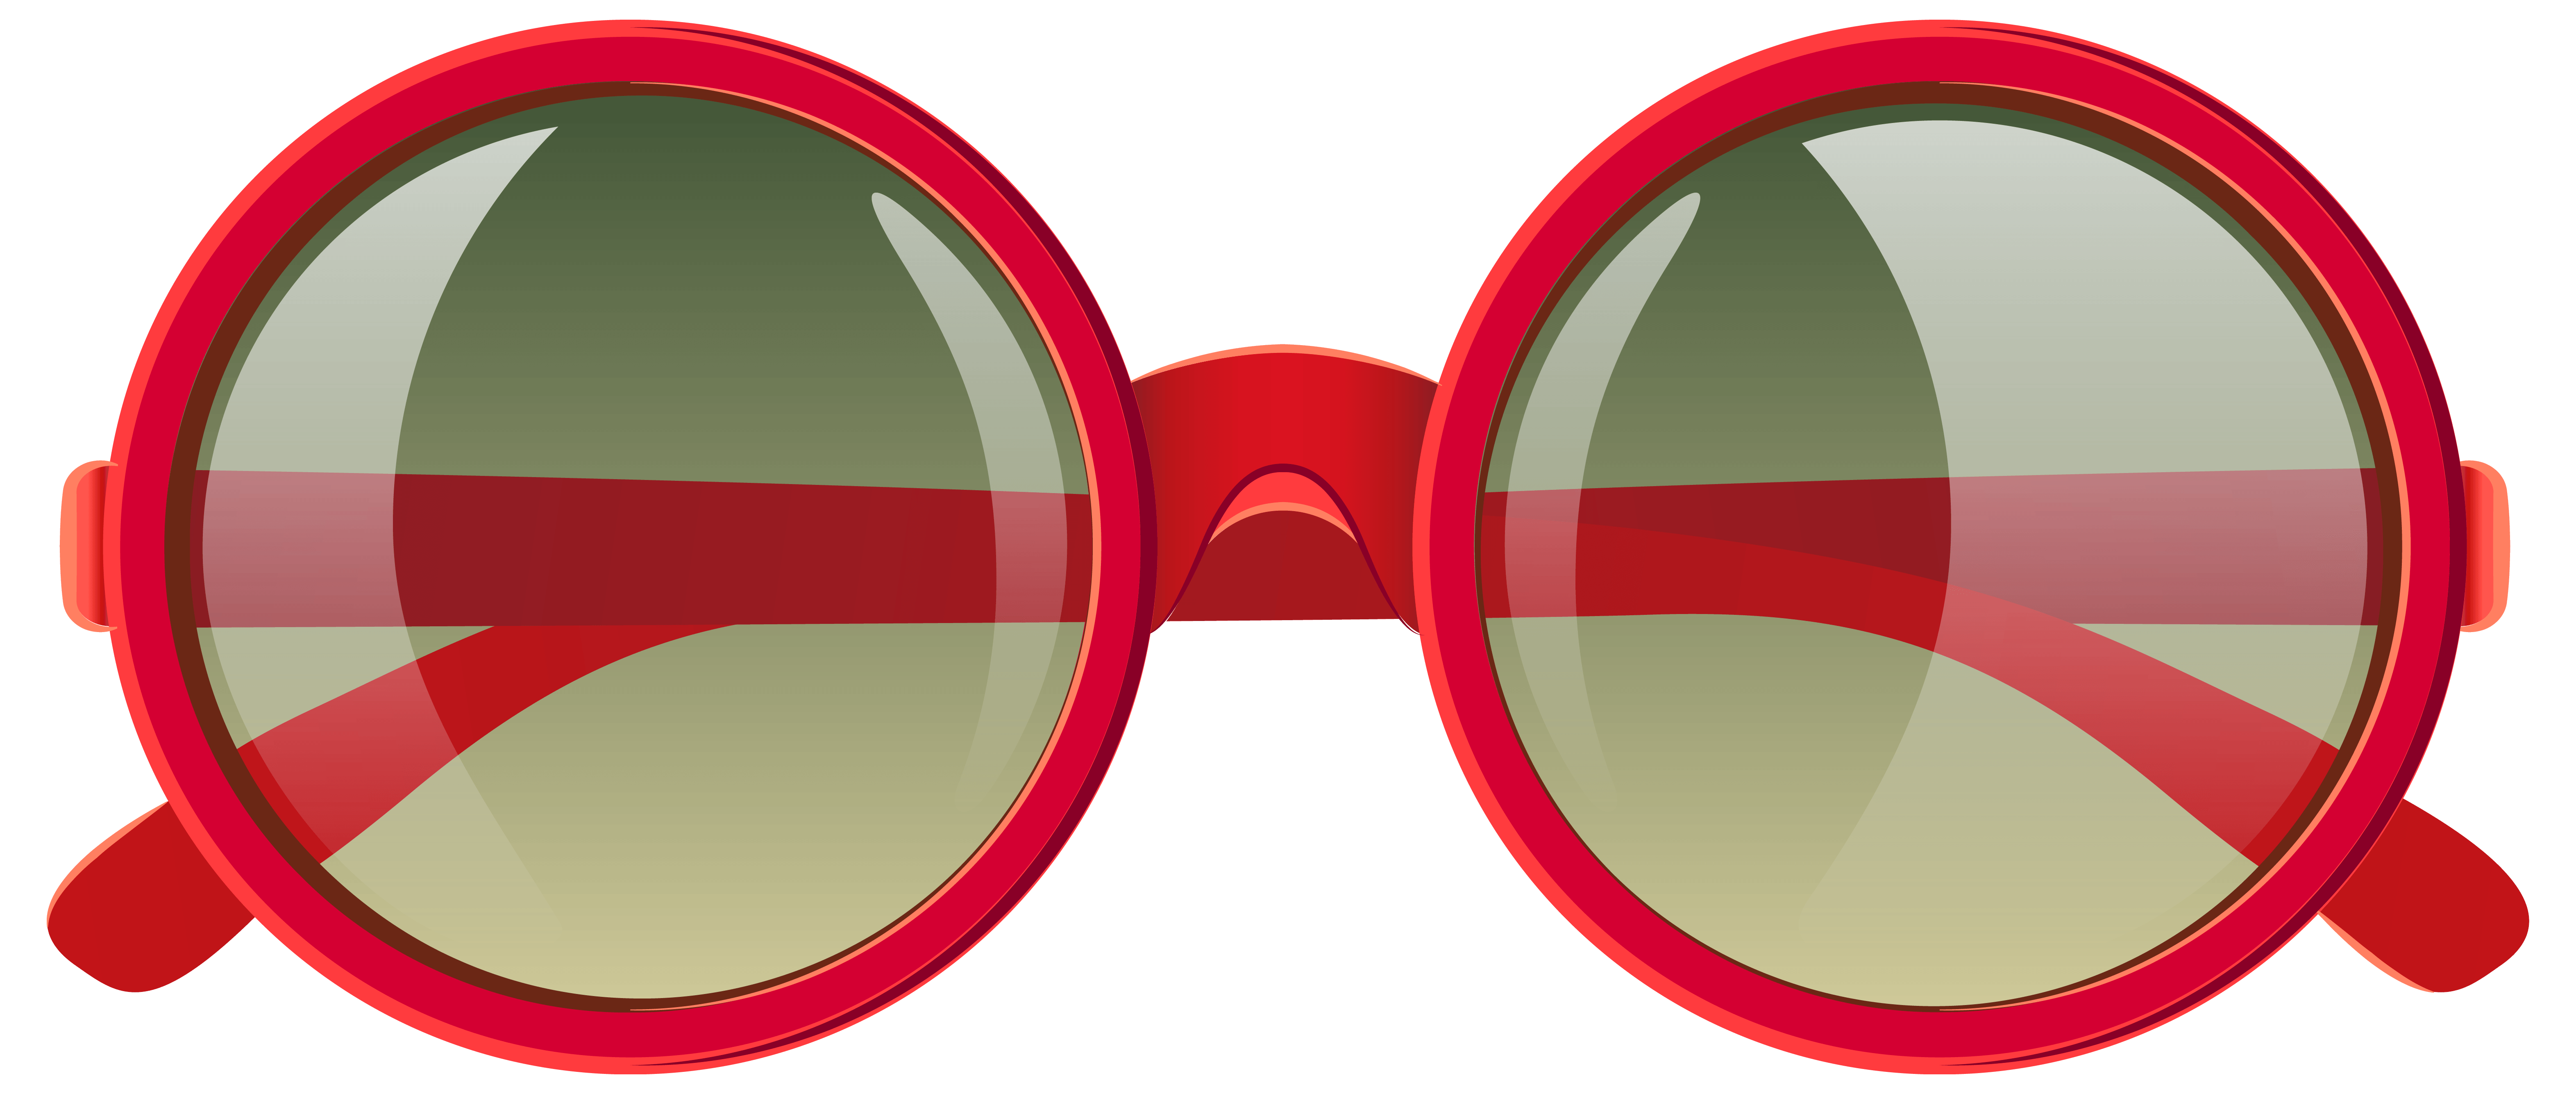 Sunglasses clipart sunshade. Png free download best